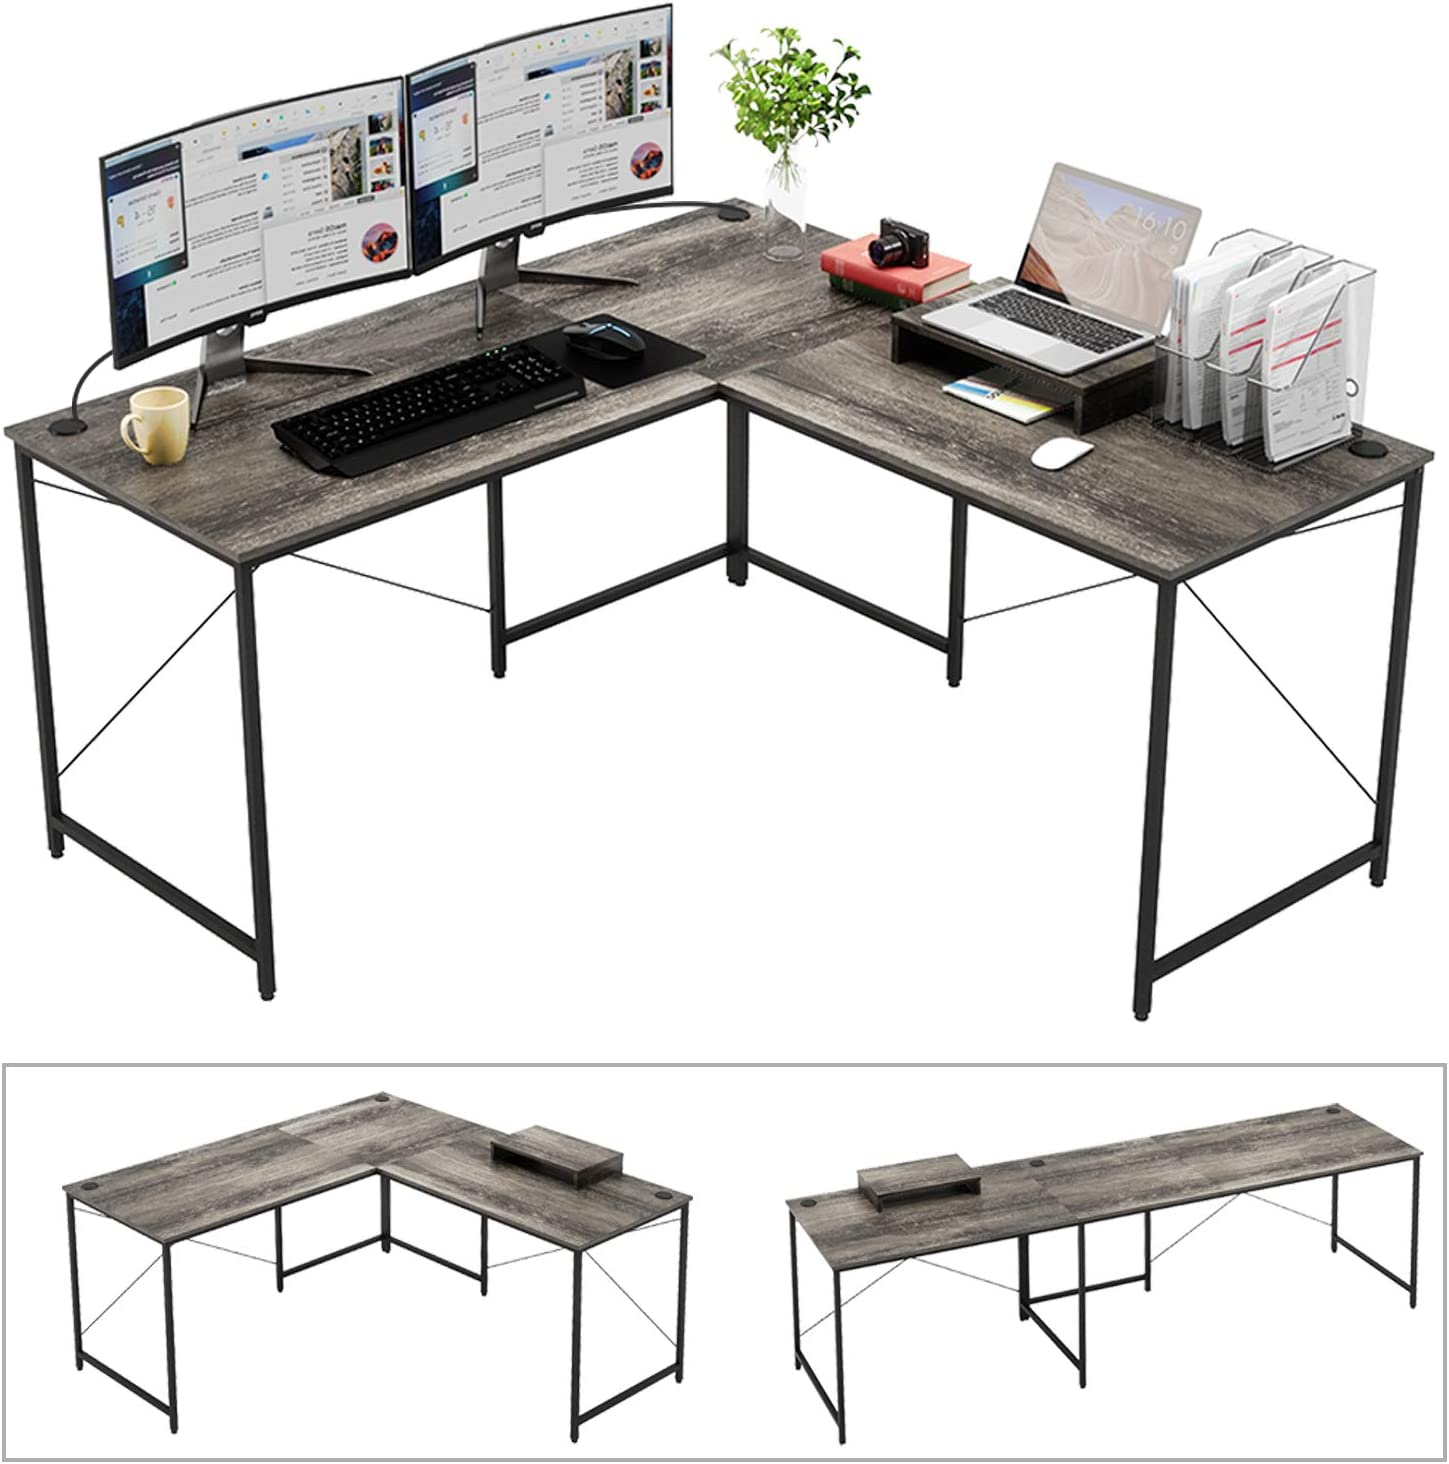 "Bestier Industrial L-Shaped Computer Desk, 95.5"" Large 2 Person Office Corner Desk, Adjustable L Shaped or Long Desk with Free Monitor Stand, Home Writing Gaming Desk Build-in Cord Management, Gray"